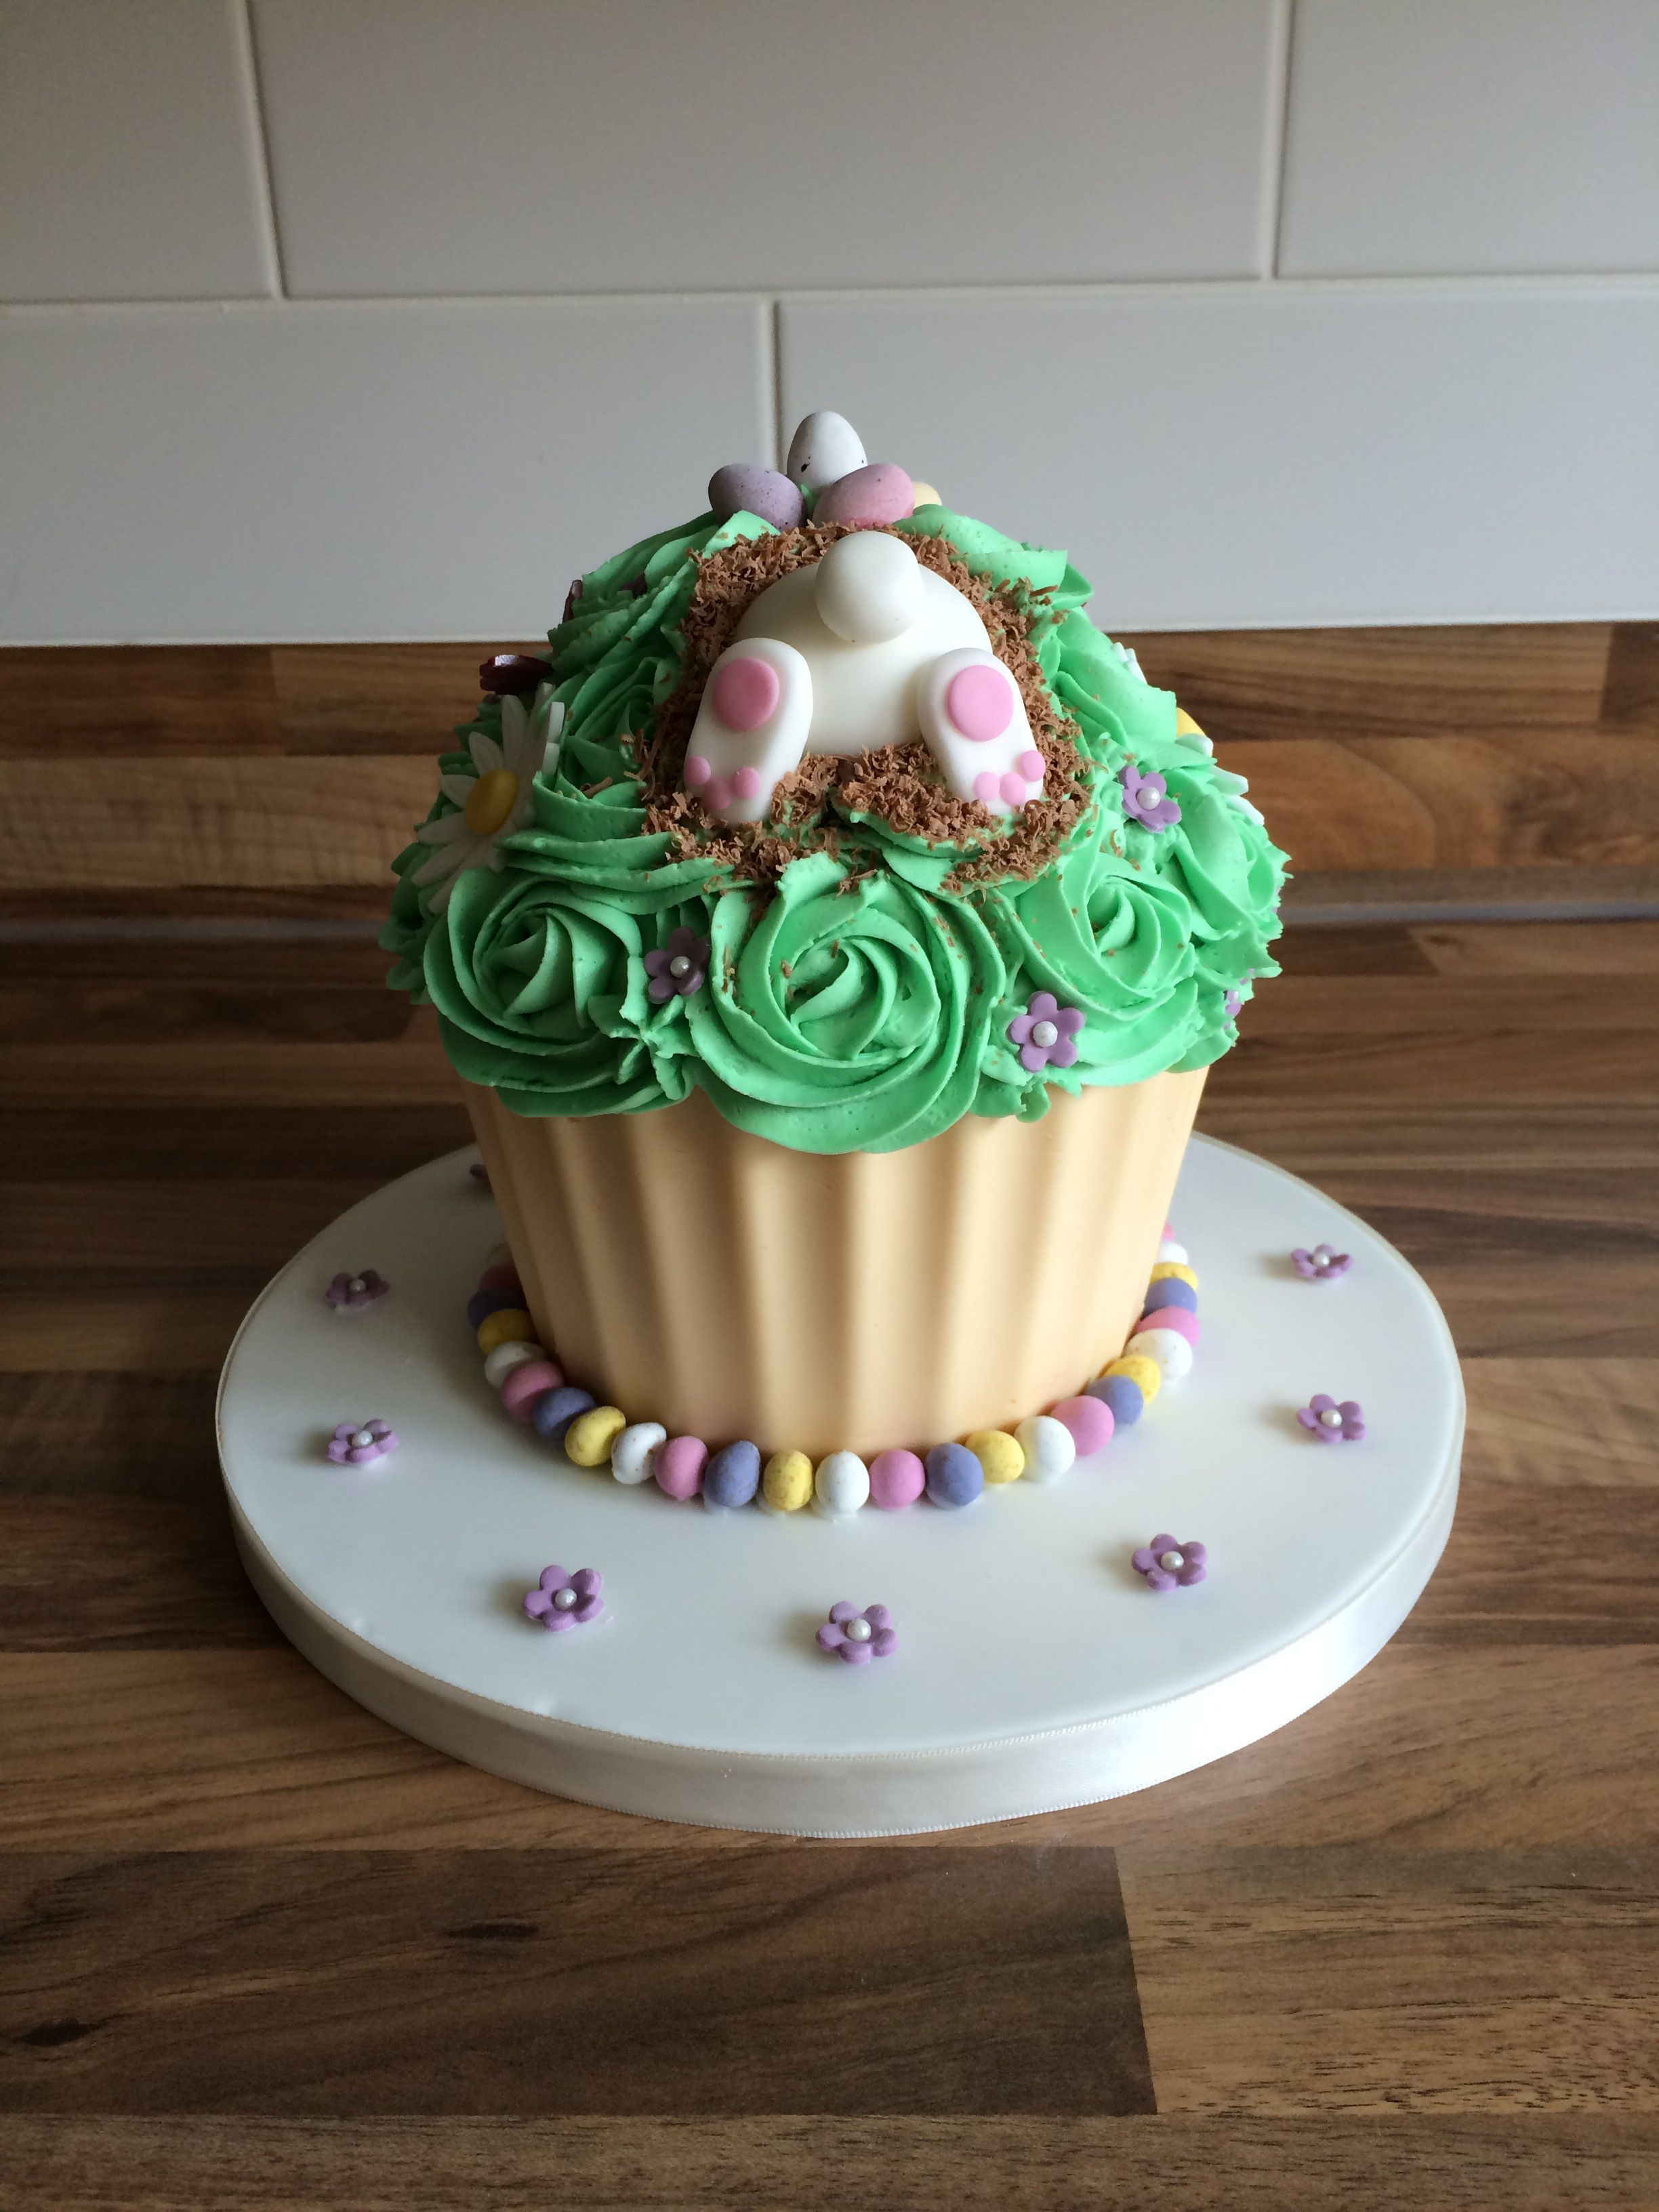 Easter Bunny Themed Giant Cupcake Giant Cupcake Cakes Big Cupcake Giant Cupcakes